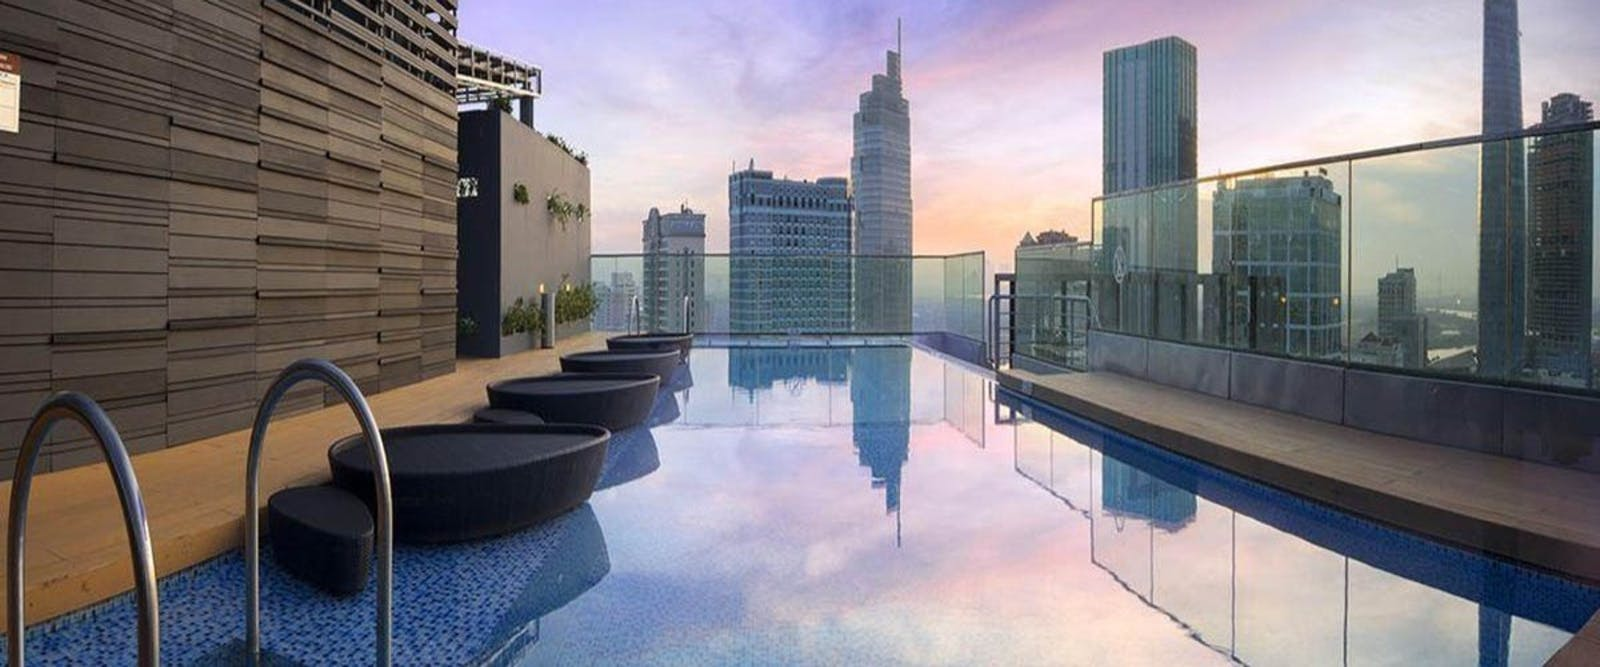 Rooftop Pool at Liberty Central Saigon Citypoint Hotel, Vietnam